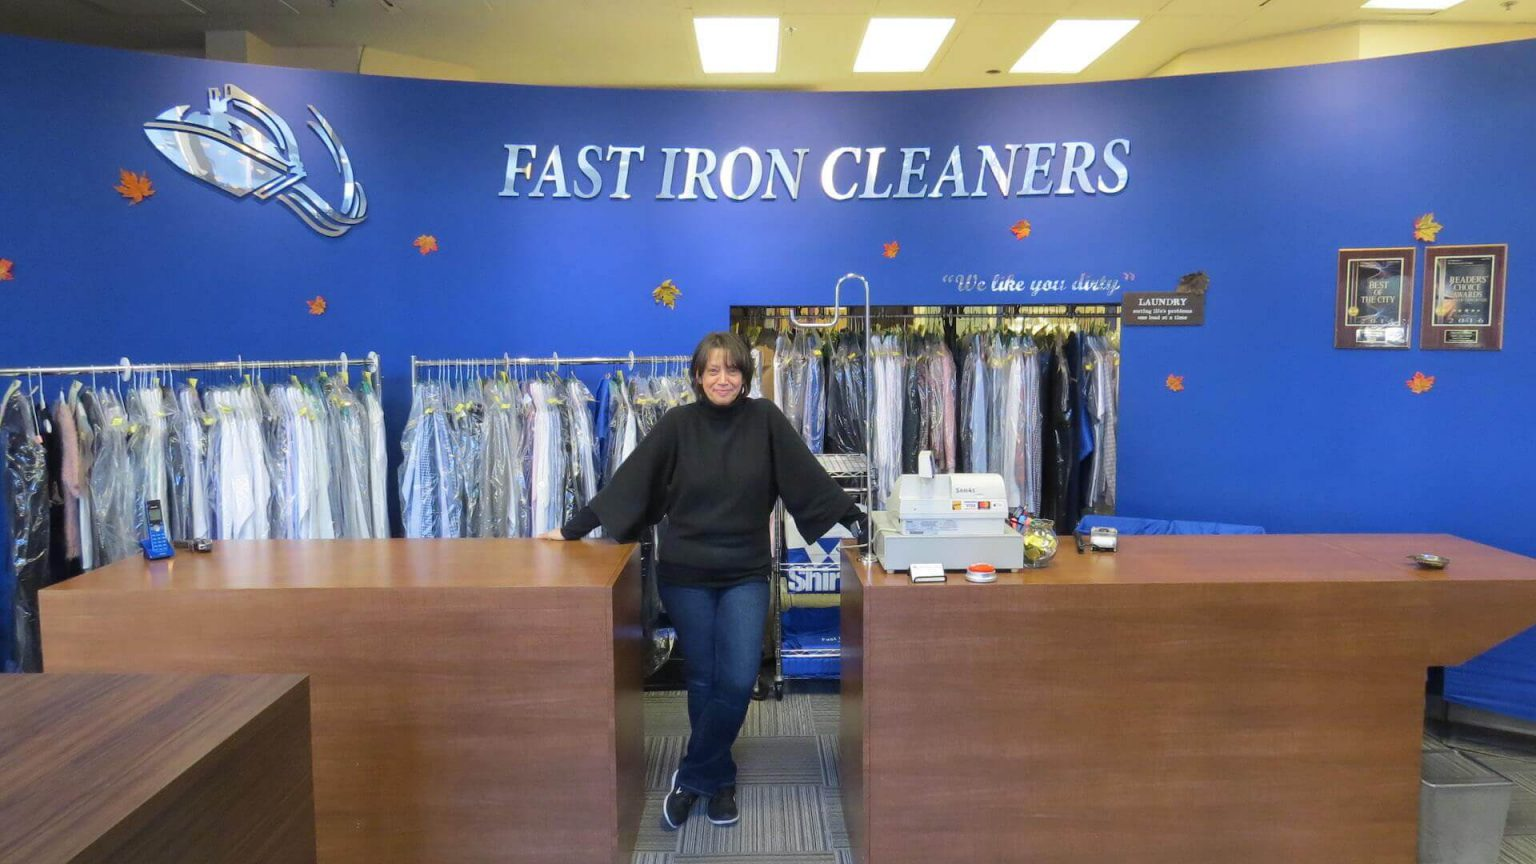 Fast Iron Cleaners